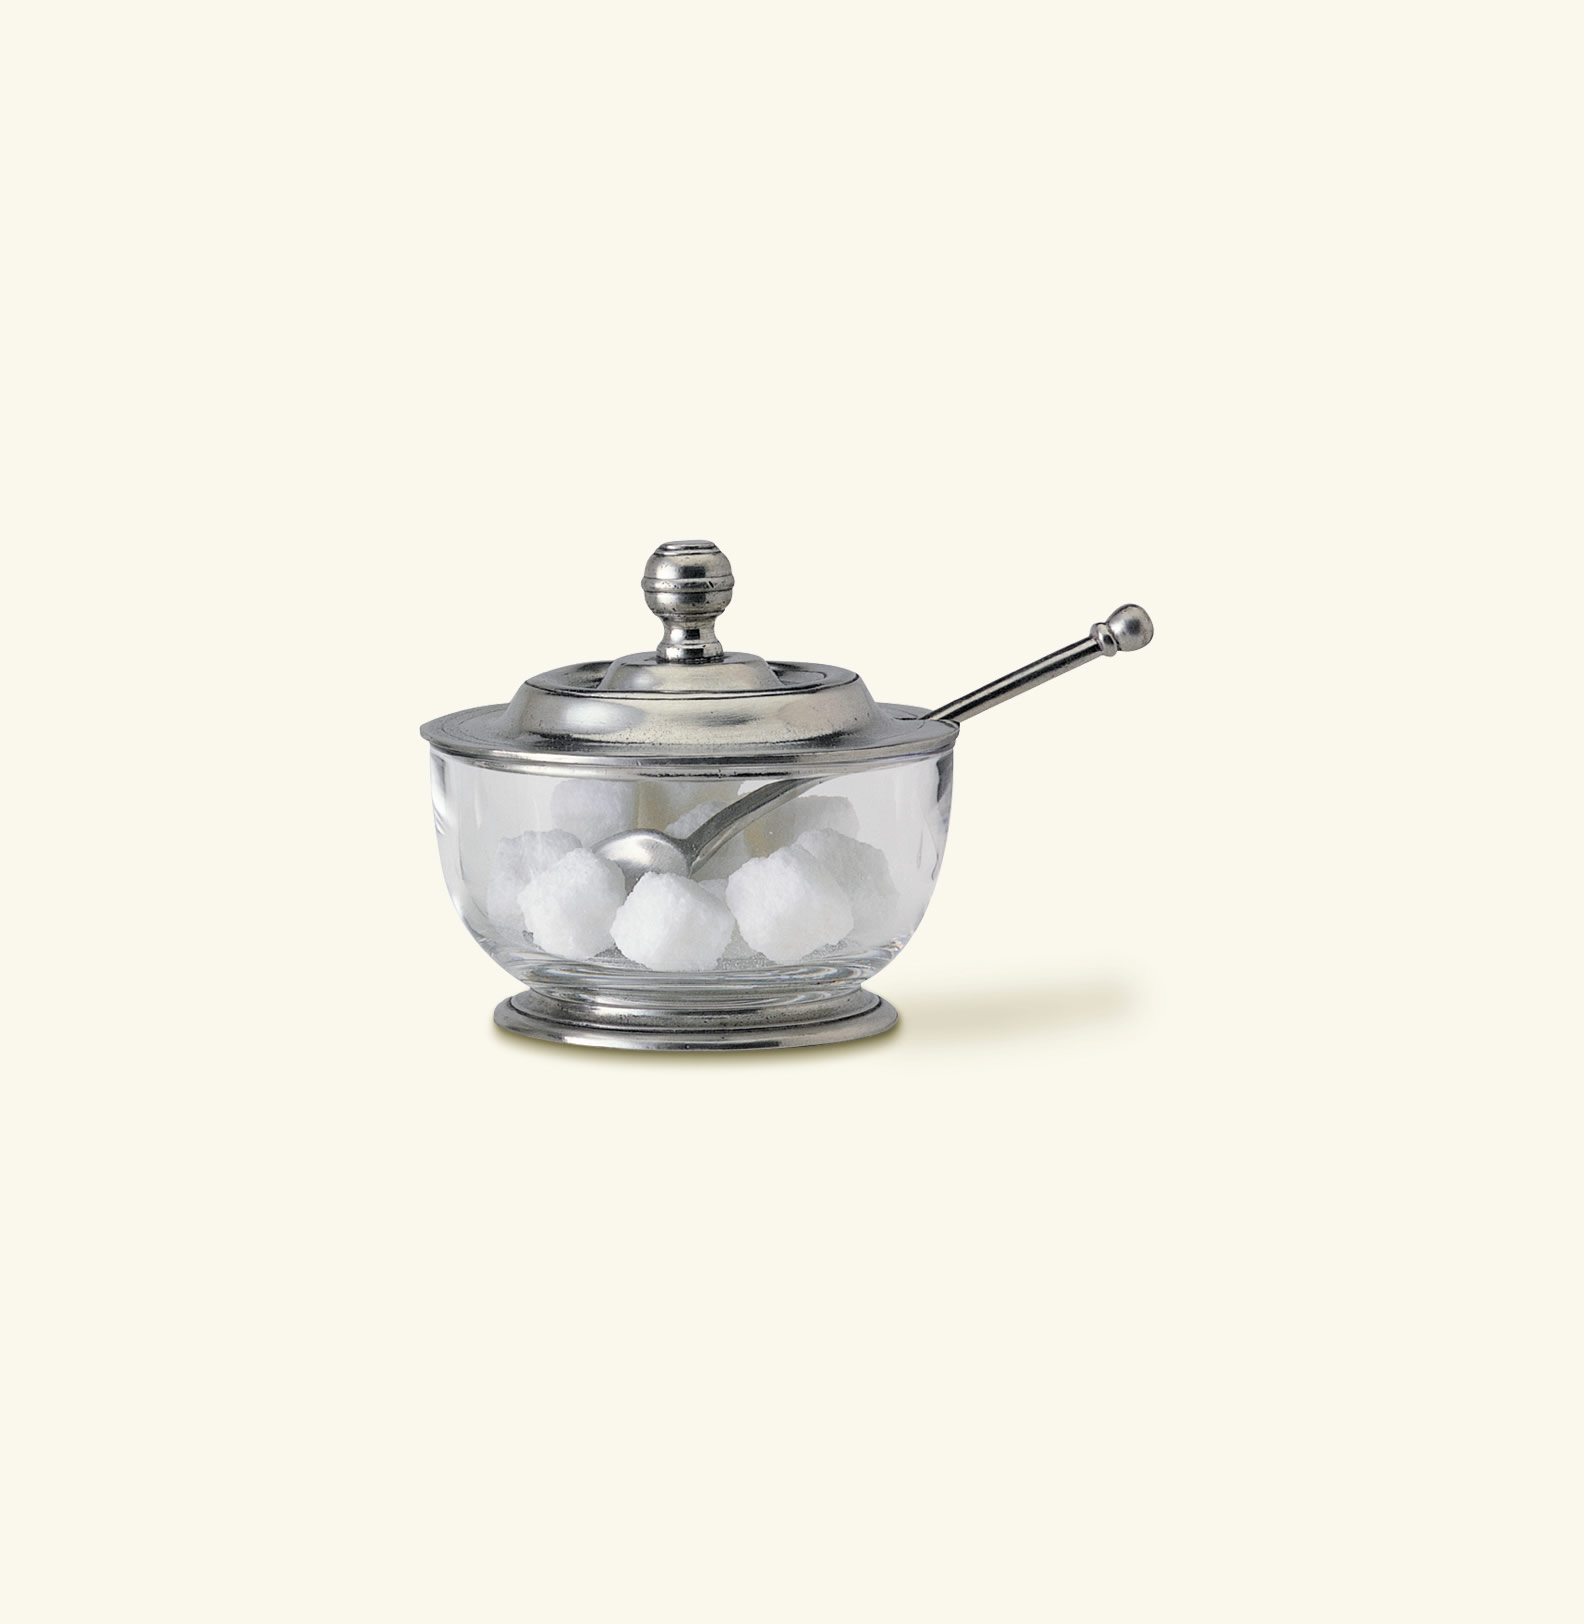 match pewter sugar bowl with spoon - sugar bowl with spoon zoom